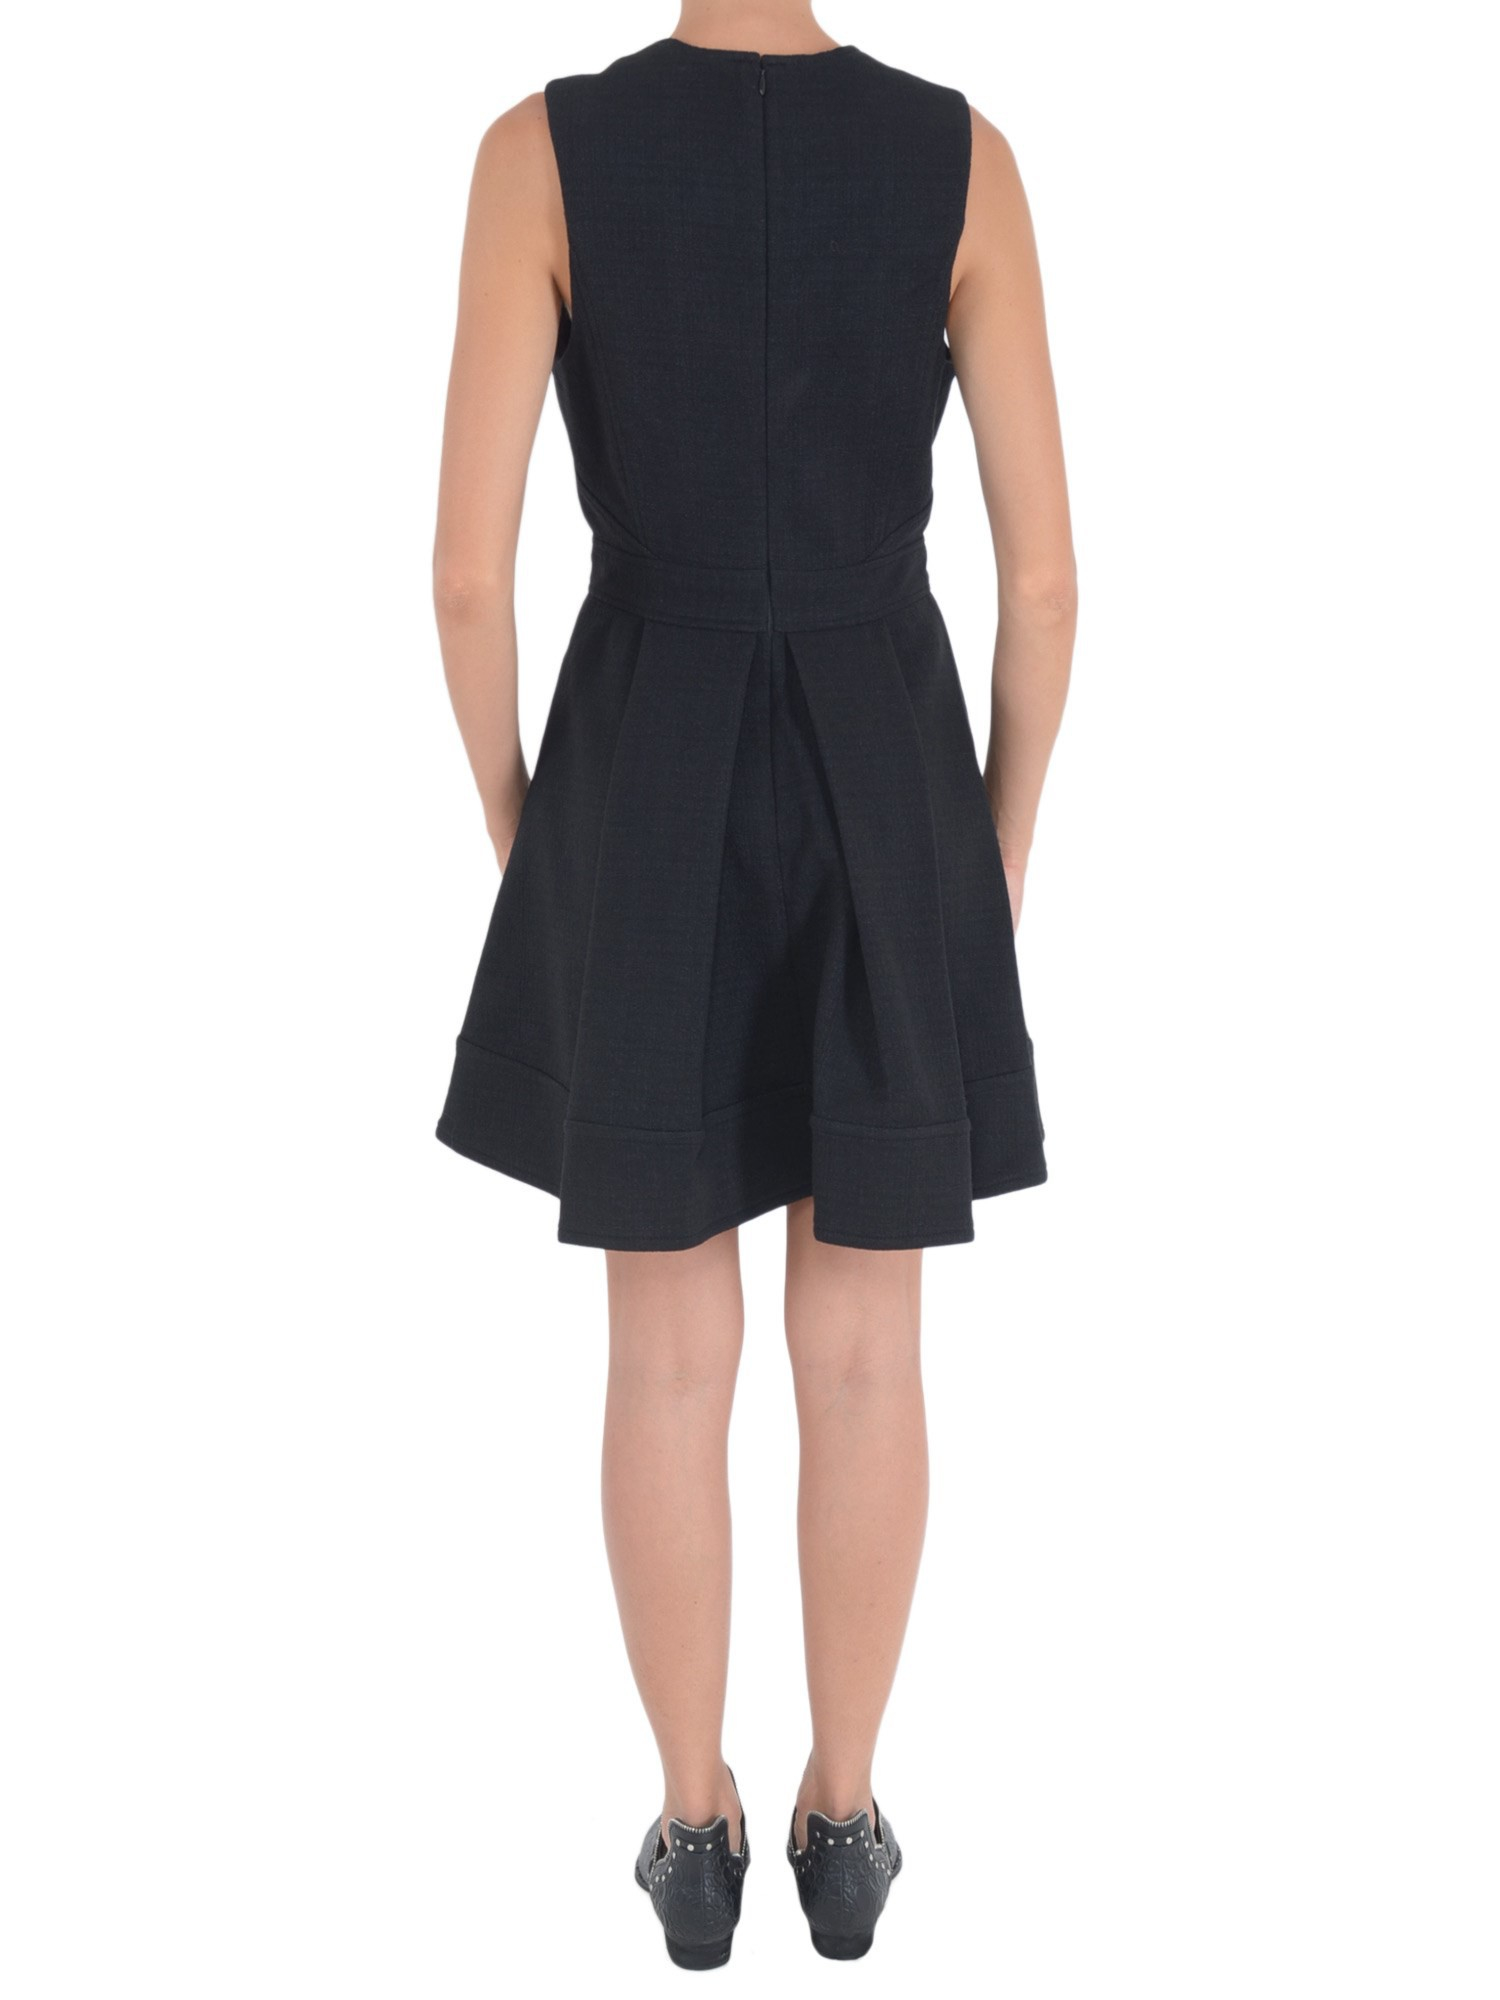 proenza schouler dress with pleated skirt in black nero